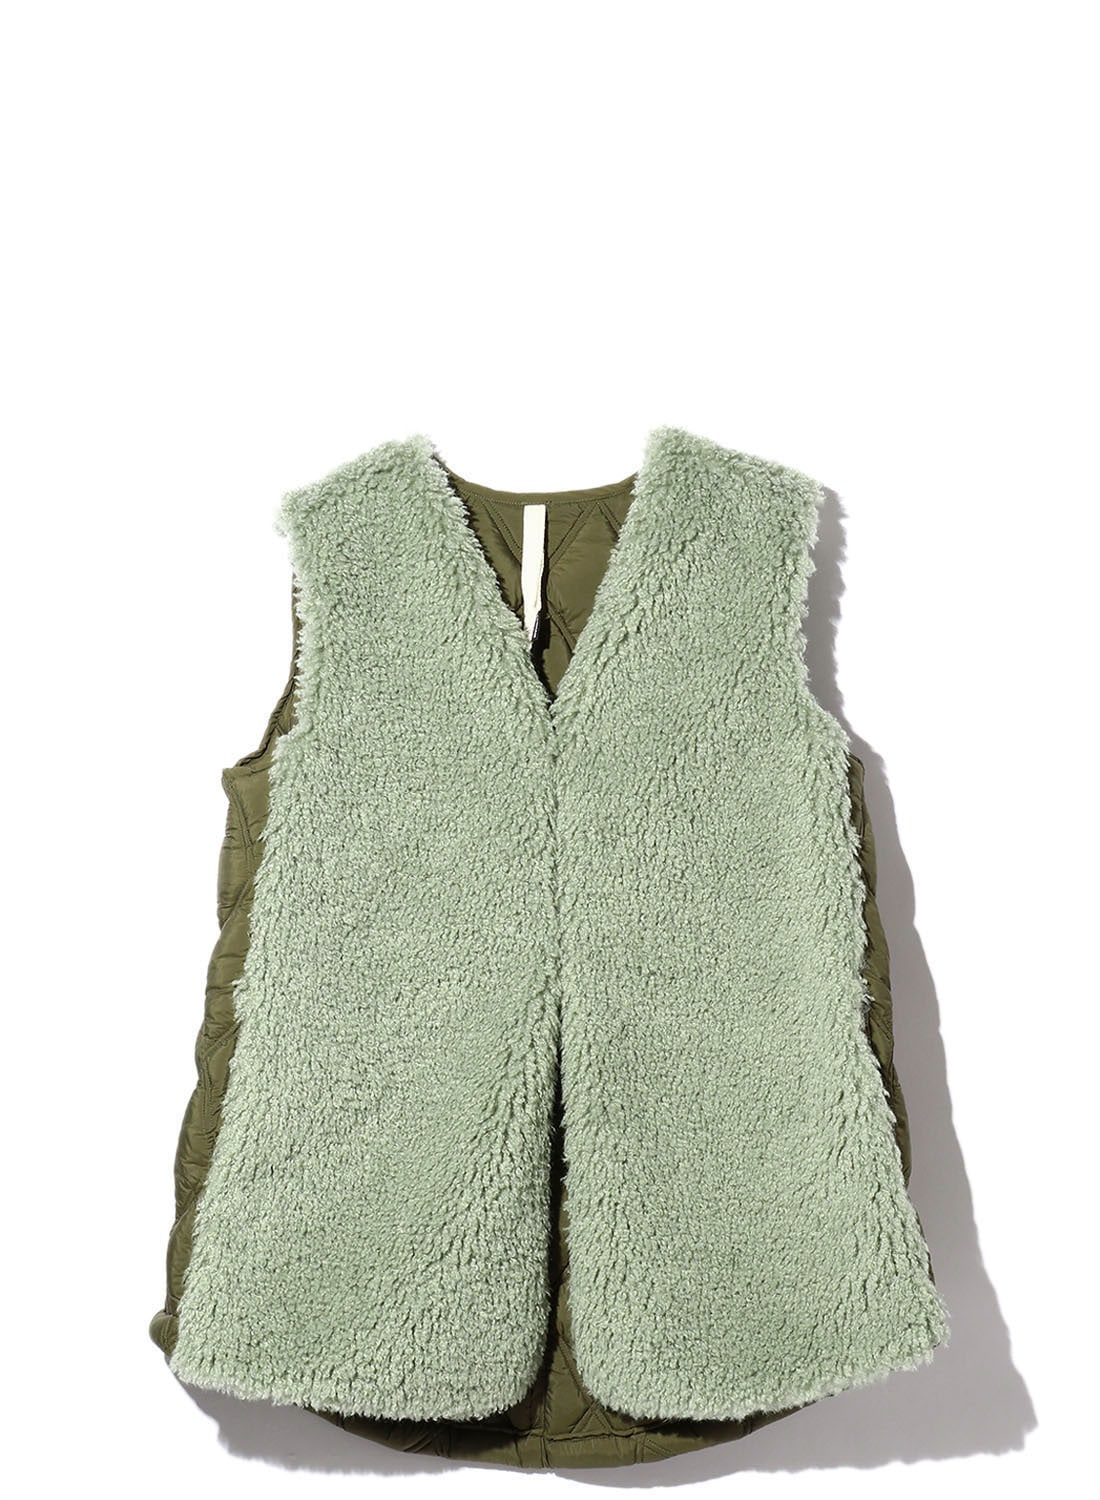 【日本限定】 FAKE SHEEP GILLET